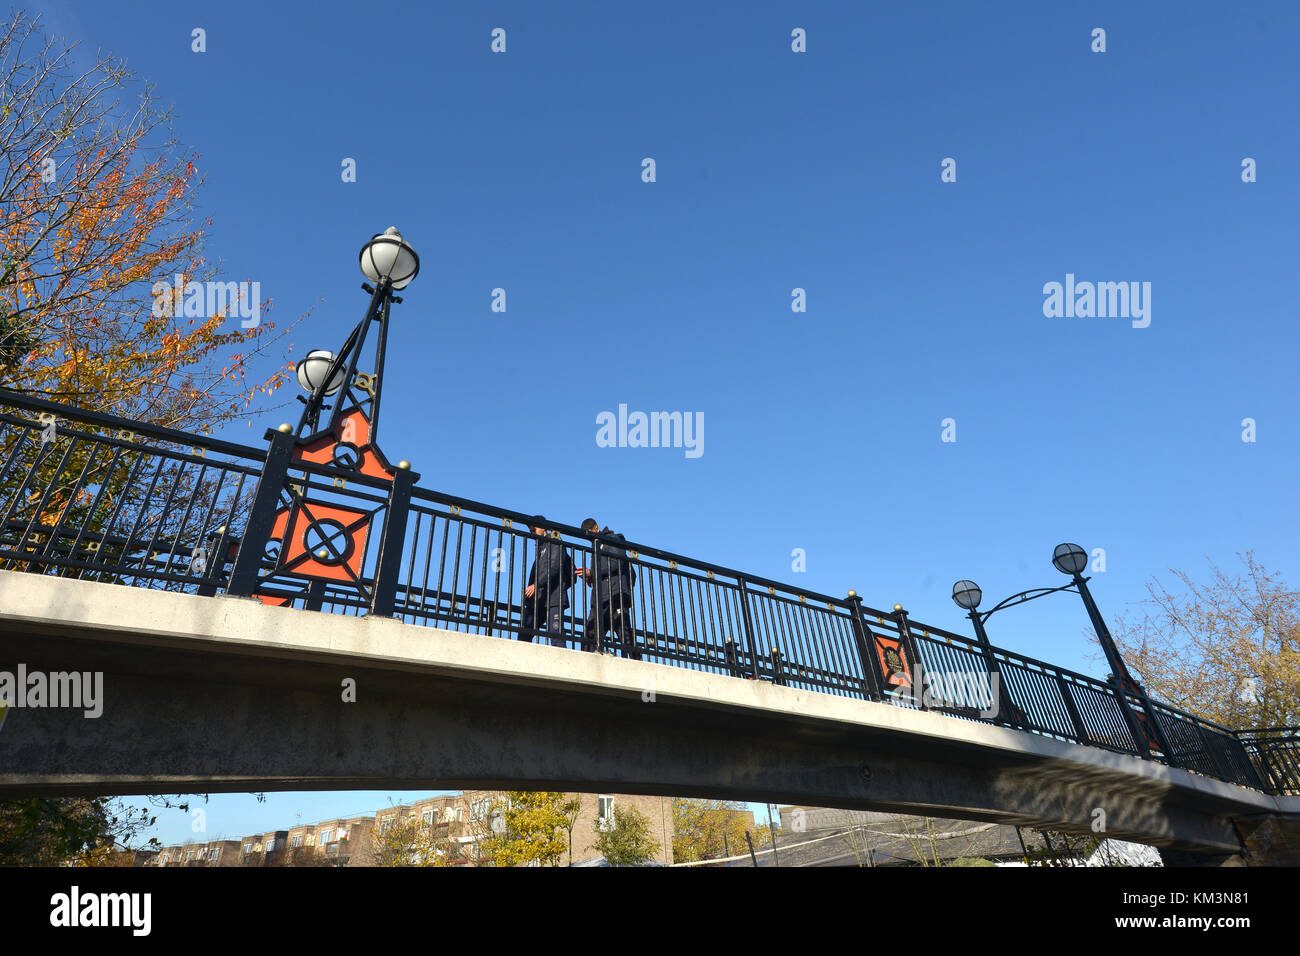 Footbridge over the Grand Union Canal, Little Venice, City of Westminster, London, on an autumn day. Stock Photo